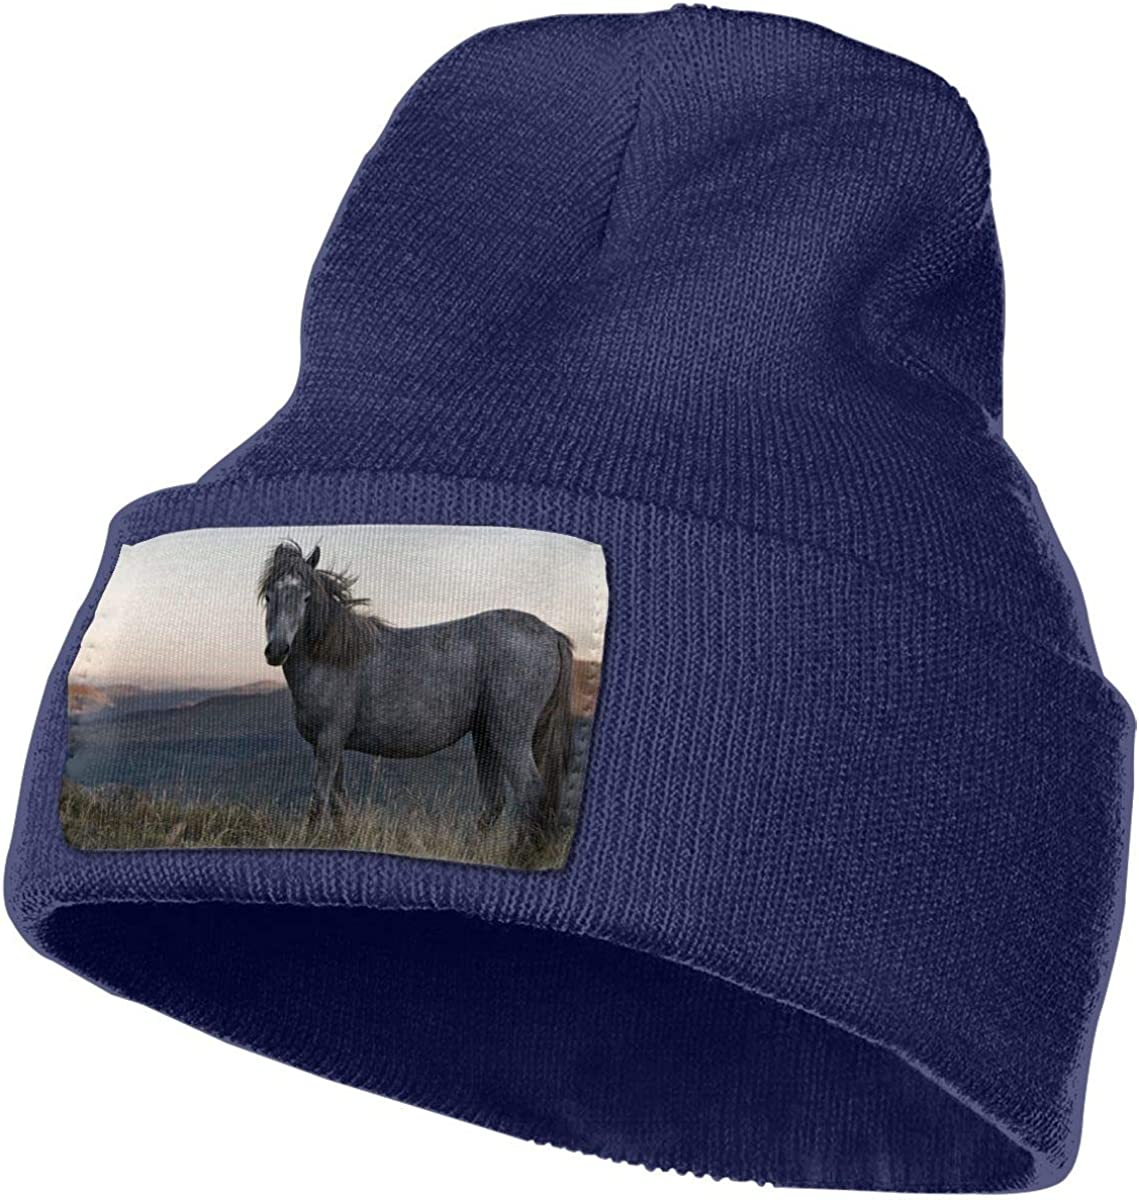 ONHIM Wild-Horse Men /& Women Plain Cuff Serious Style Beanie Hat Skull Cycling Hats